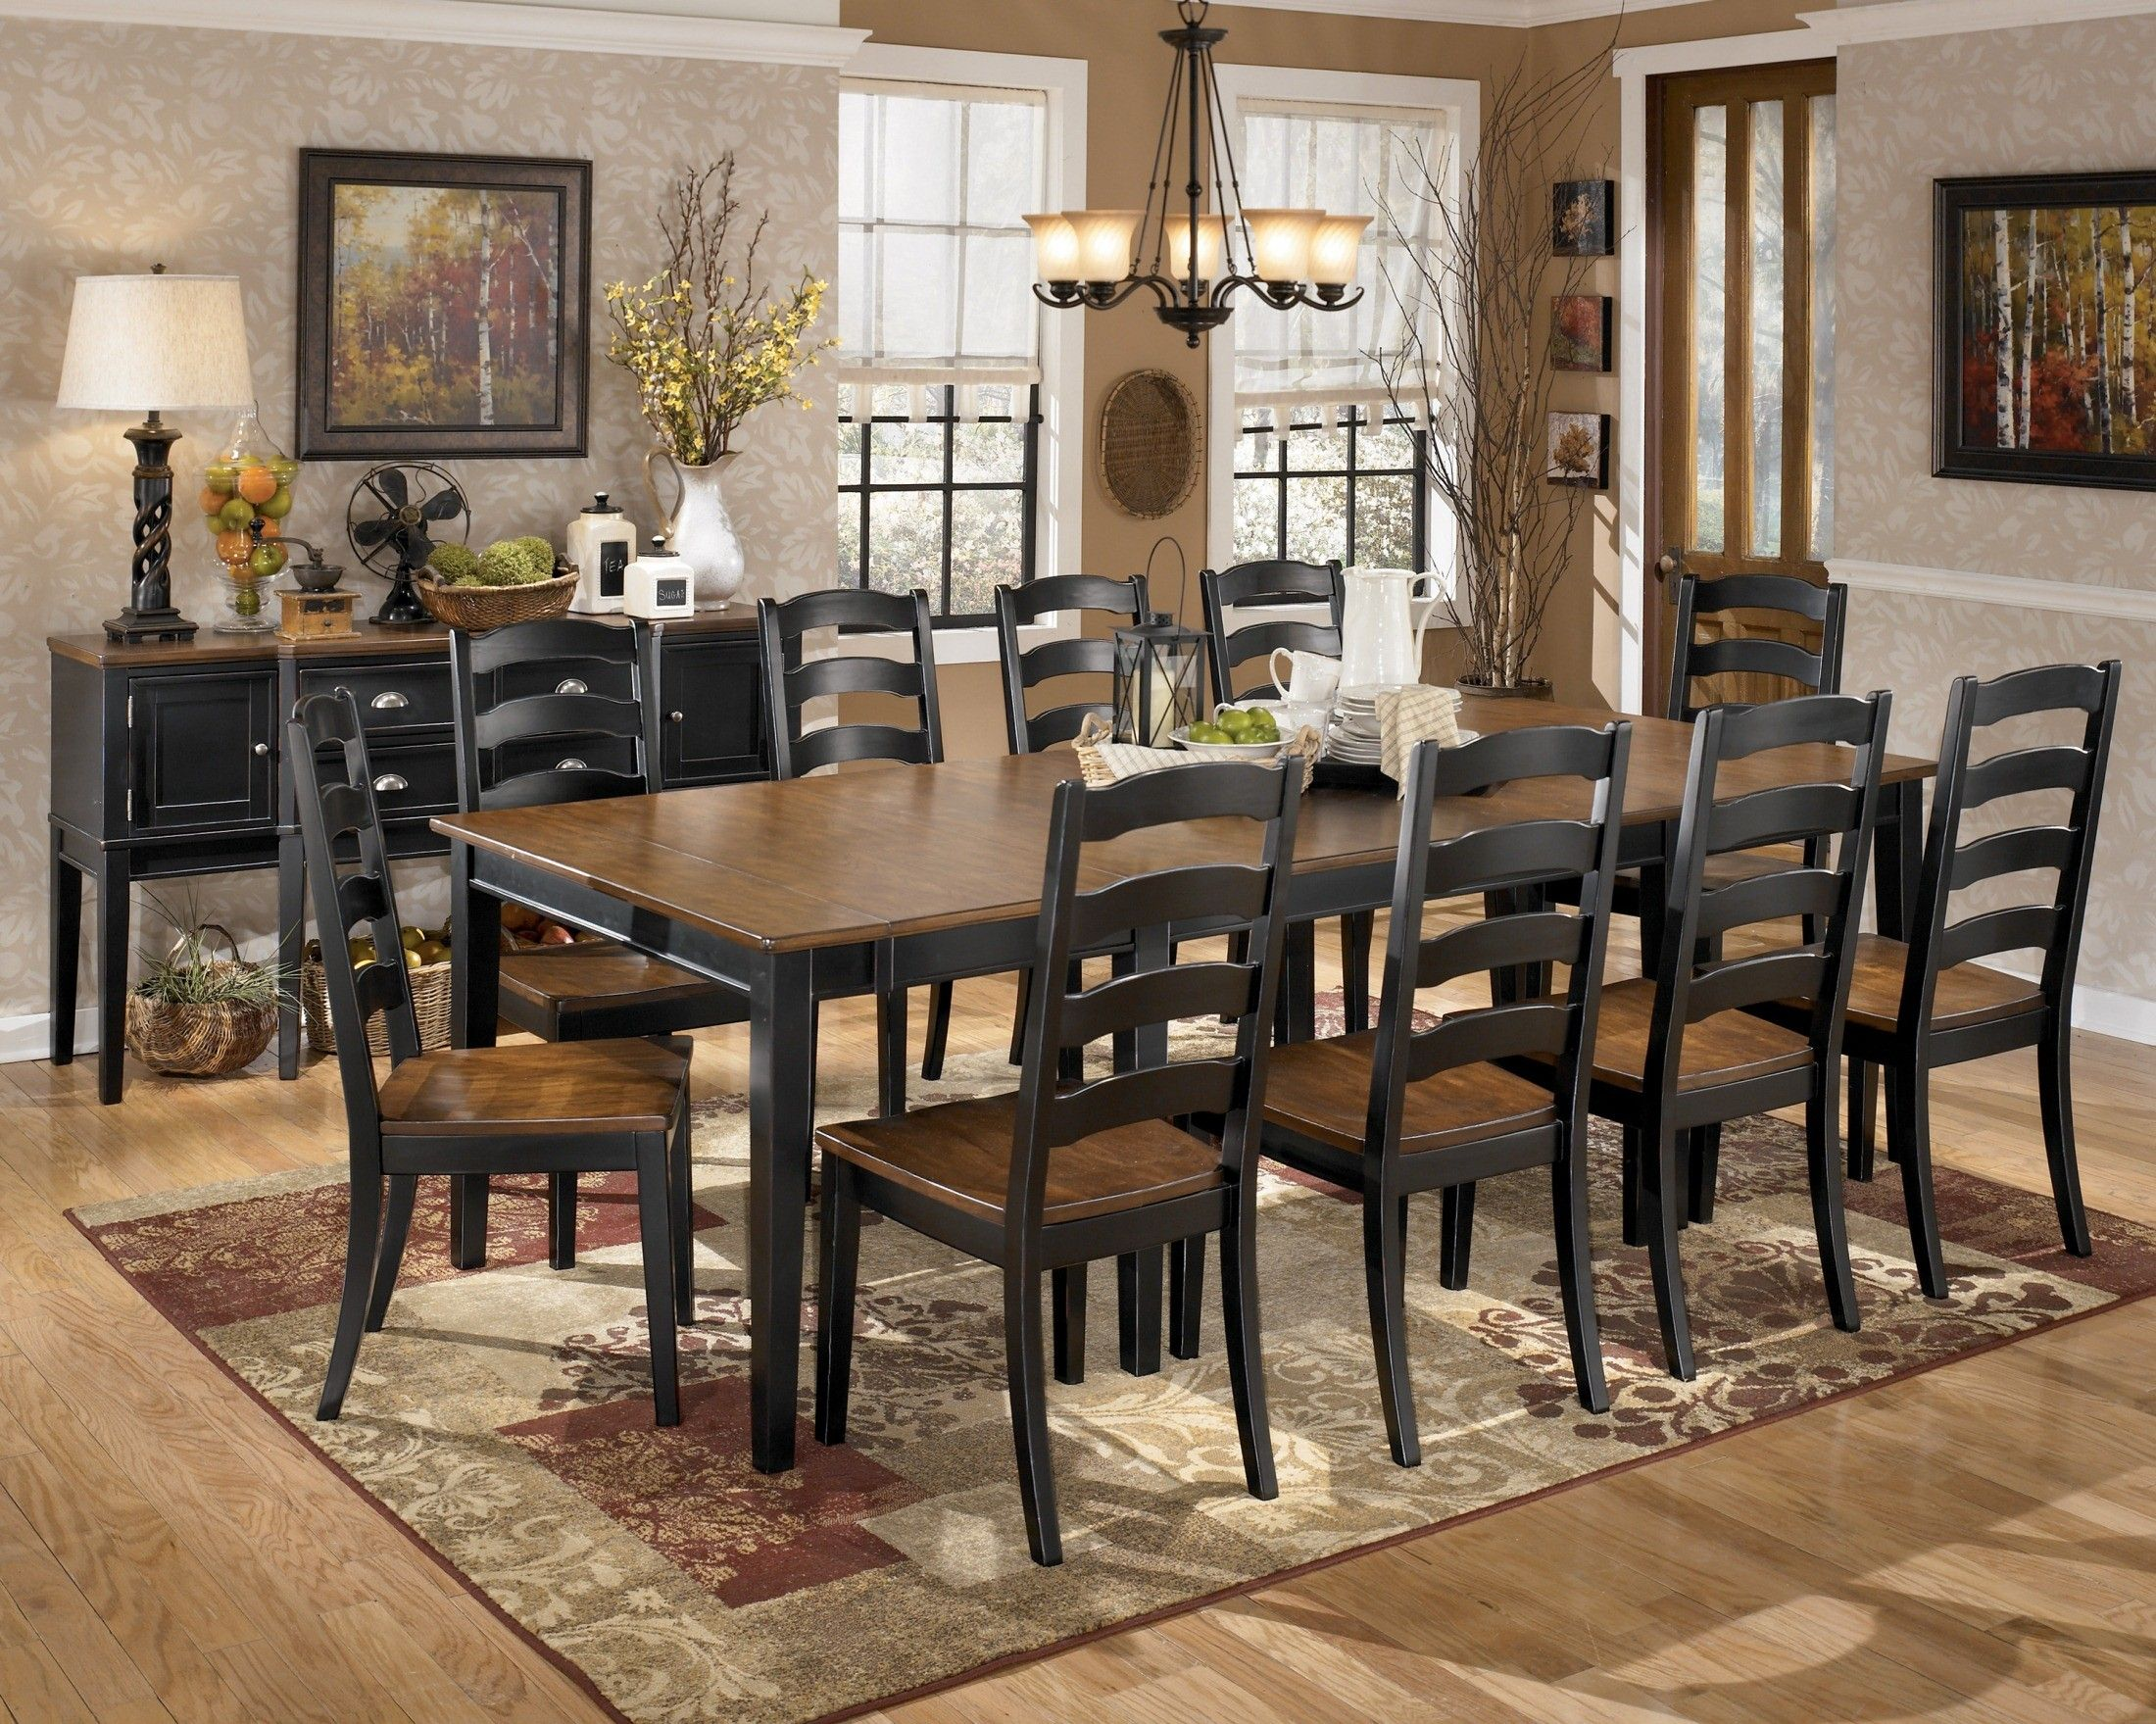 Dining Room Extension Table Owingsville Extension Table Set  Home  Pinterest  Extensions